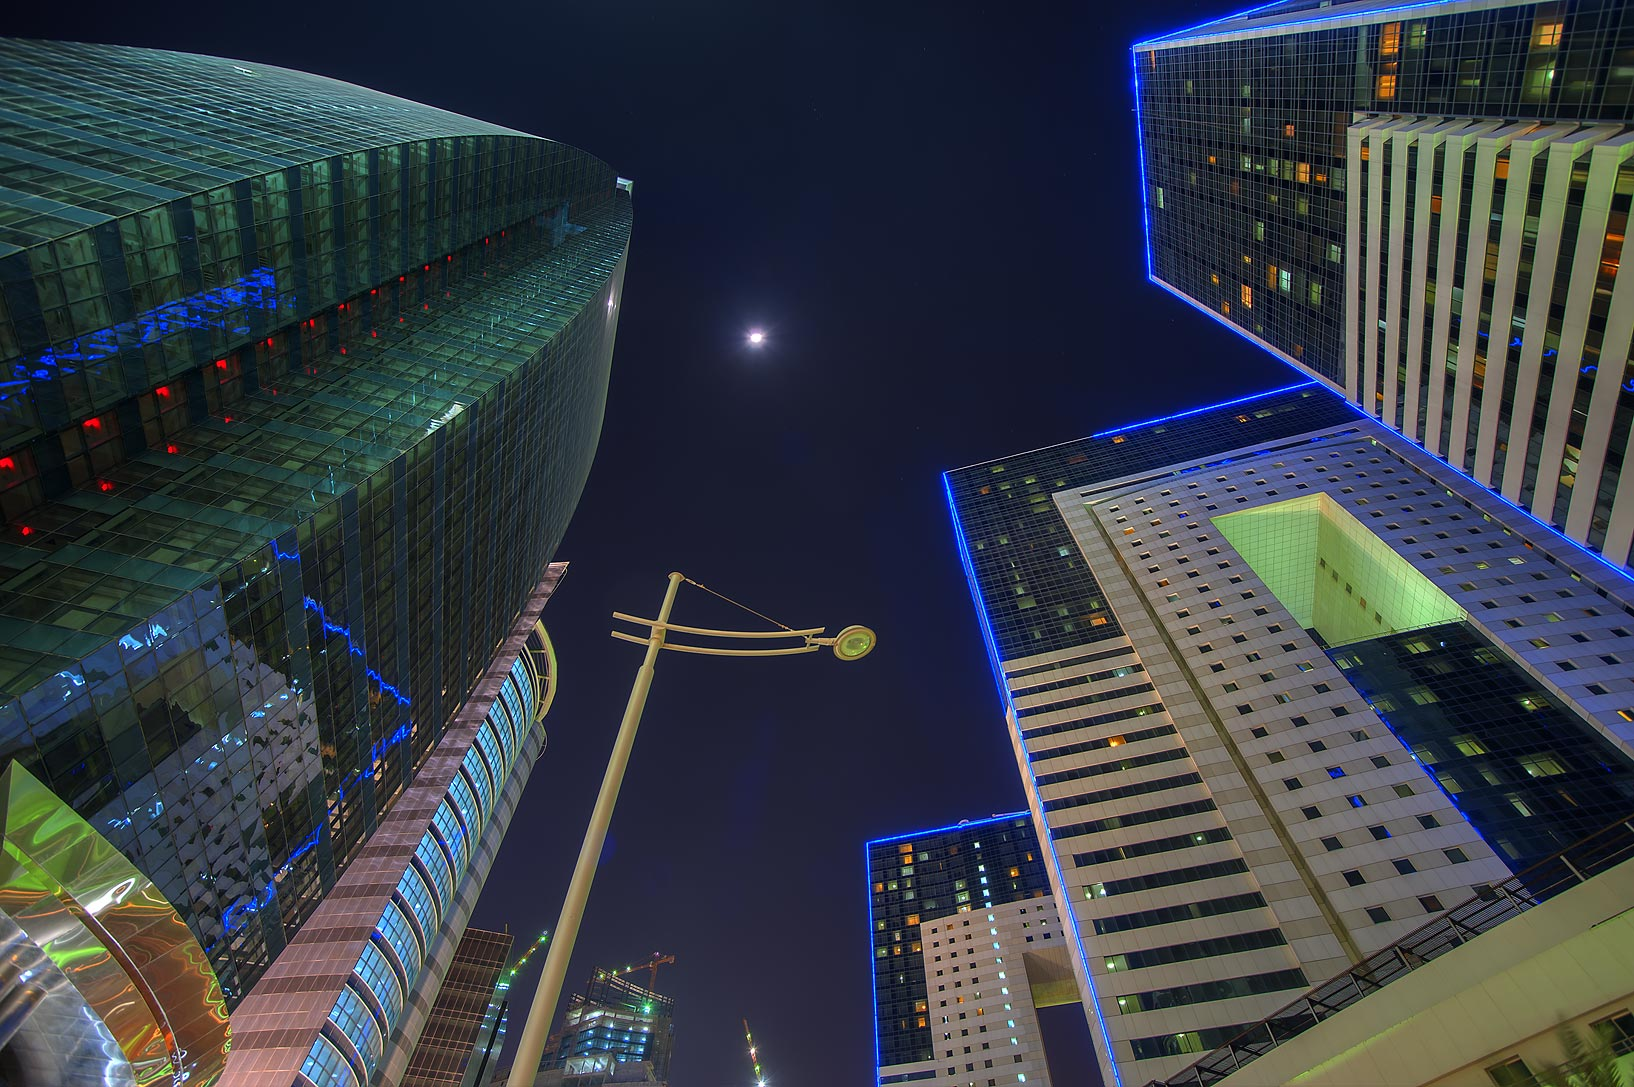 Ezdan Hotel and 'Pregnant' Tower at Al Betra St. in West Bay. Doha, Qatar